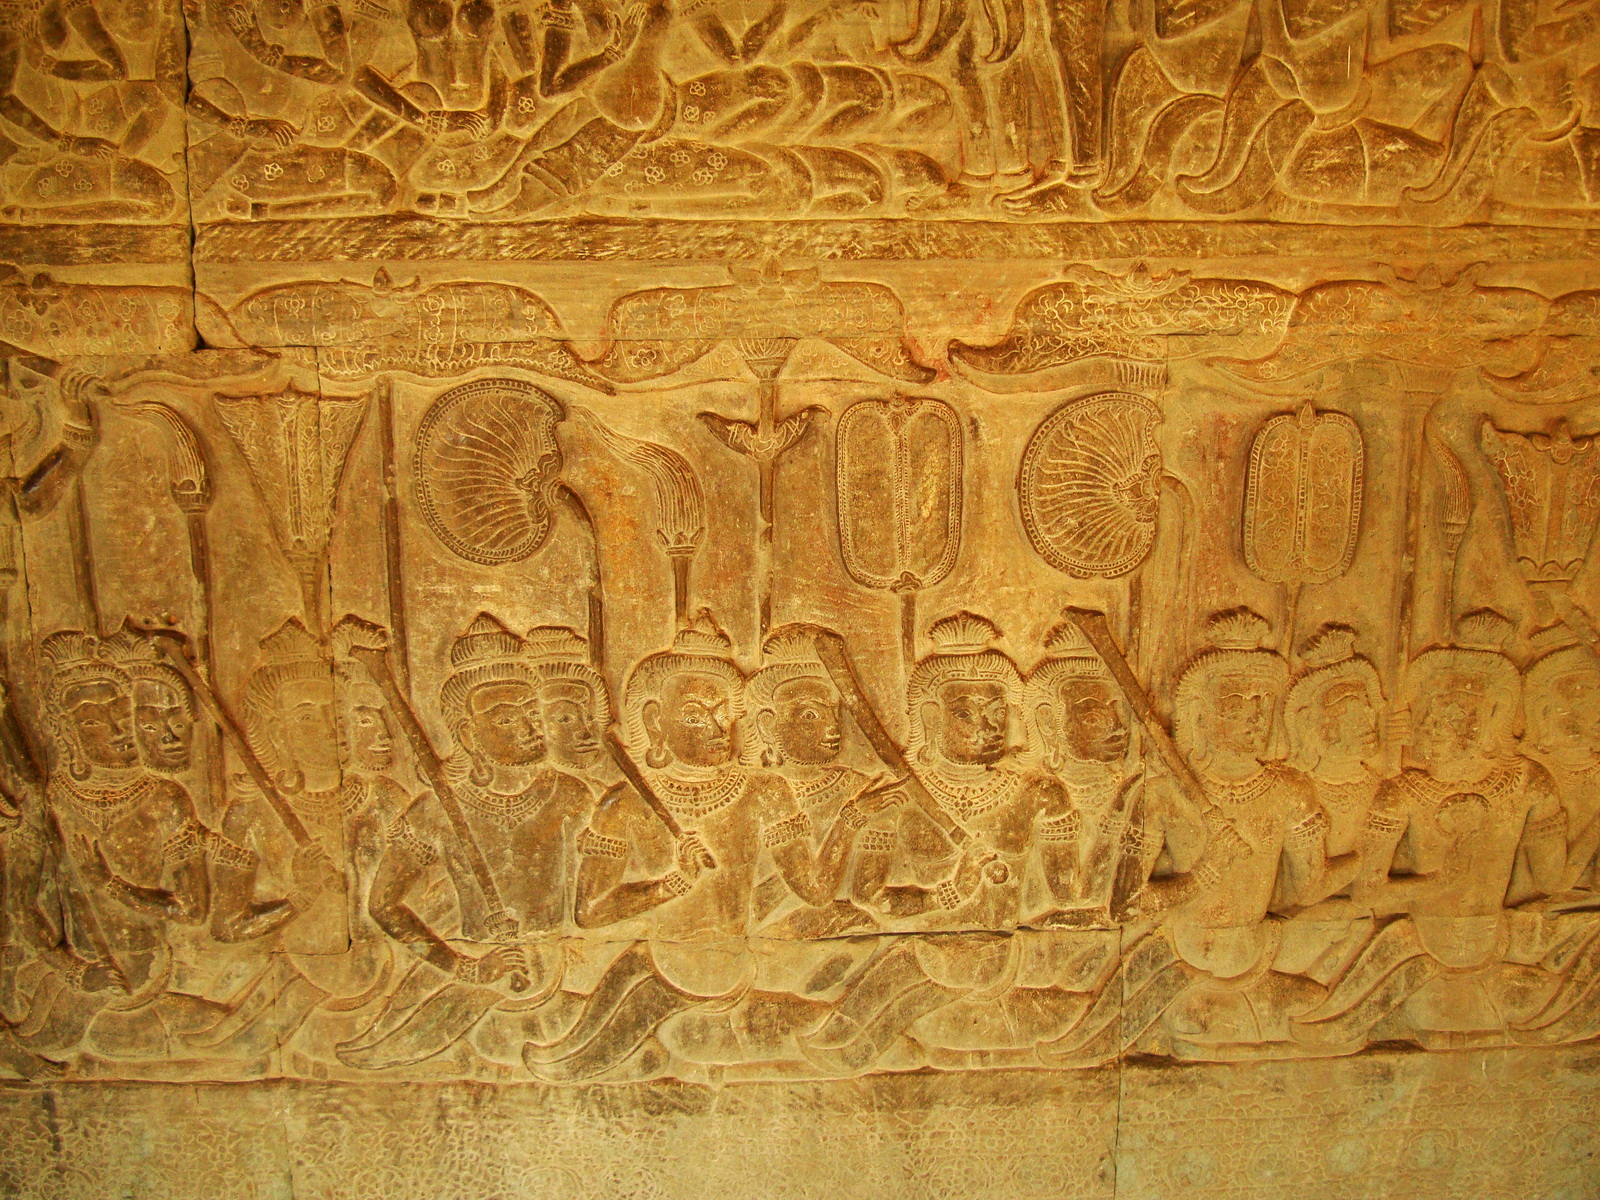 Angkor Wat Bas relief S Gallery E Wing Heavens and Hells 58